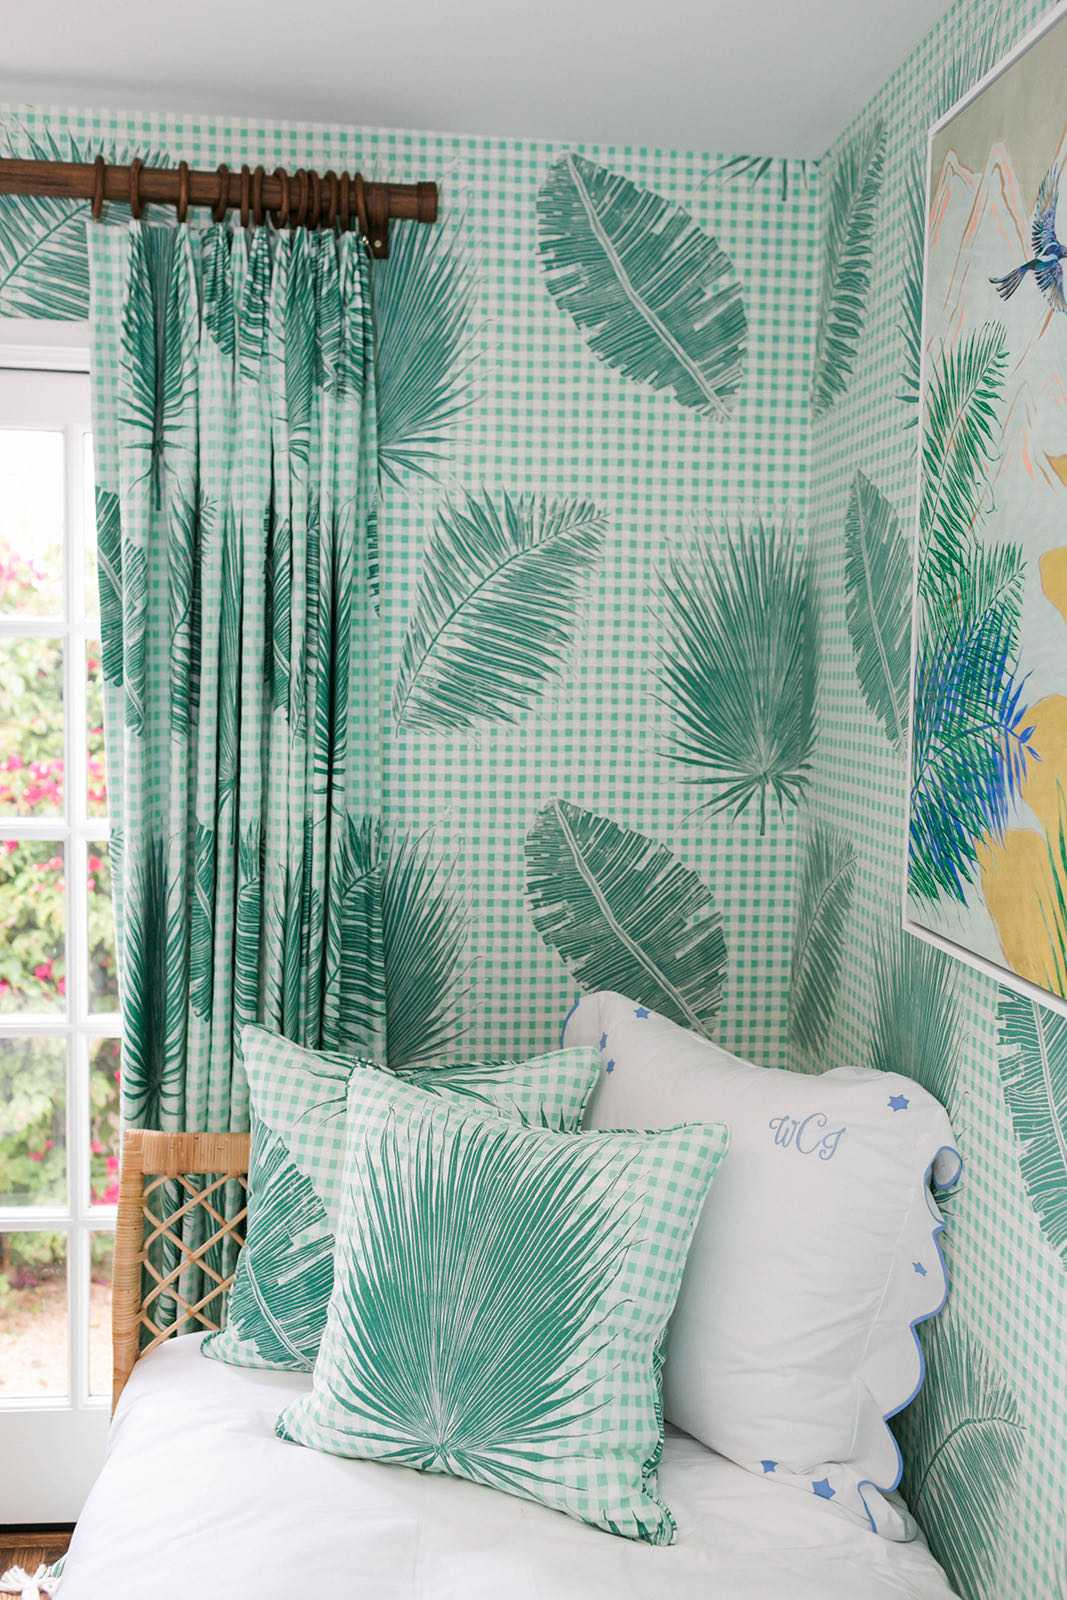 Gingham Jungle Fabric in Jade, Interiors by Sharon Lee, Photo by Mekina Saylor